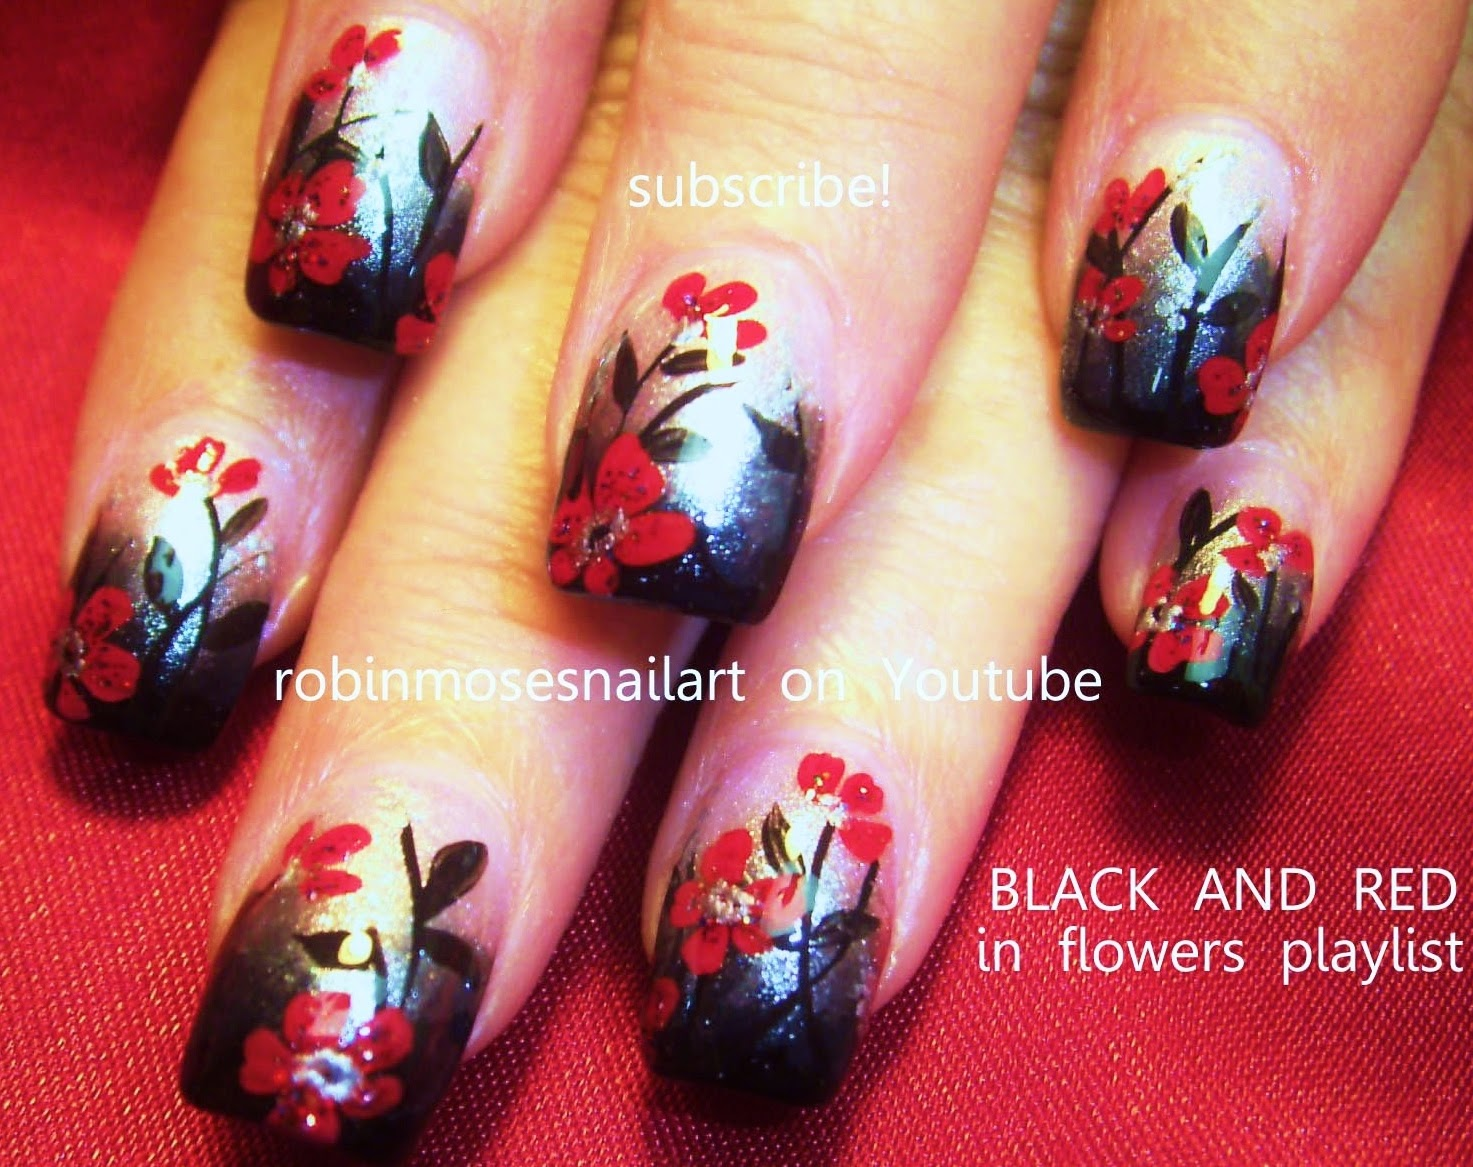 Robin moses nail art valentine nails valentine nail art nail art tutorials valentines day nail art playlist diy easy valentine nail designs for beginners to professional techs prinsesfo Gallery